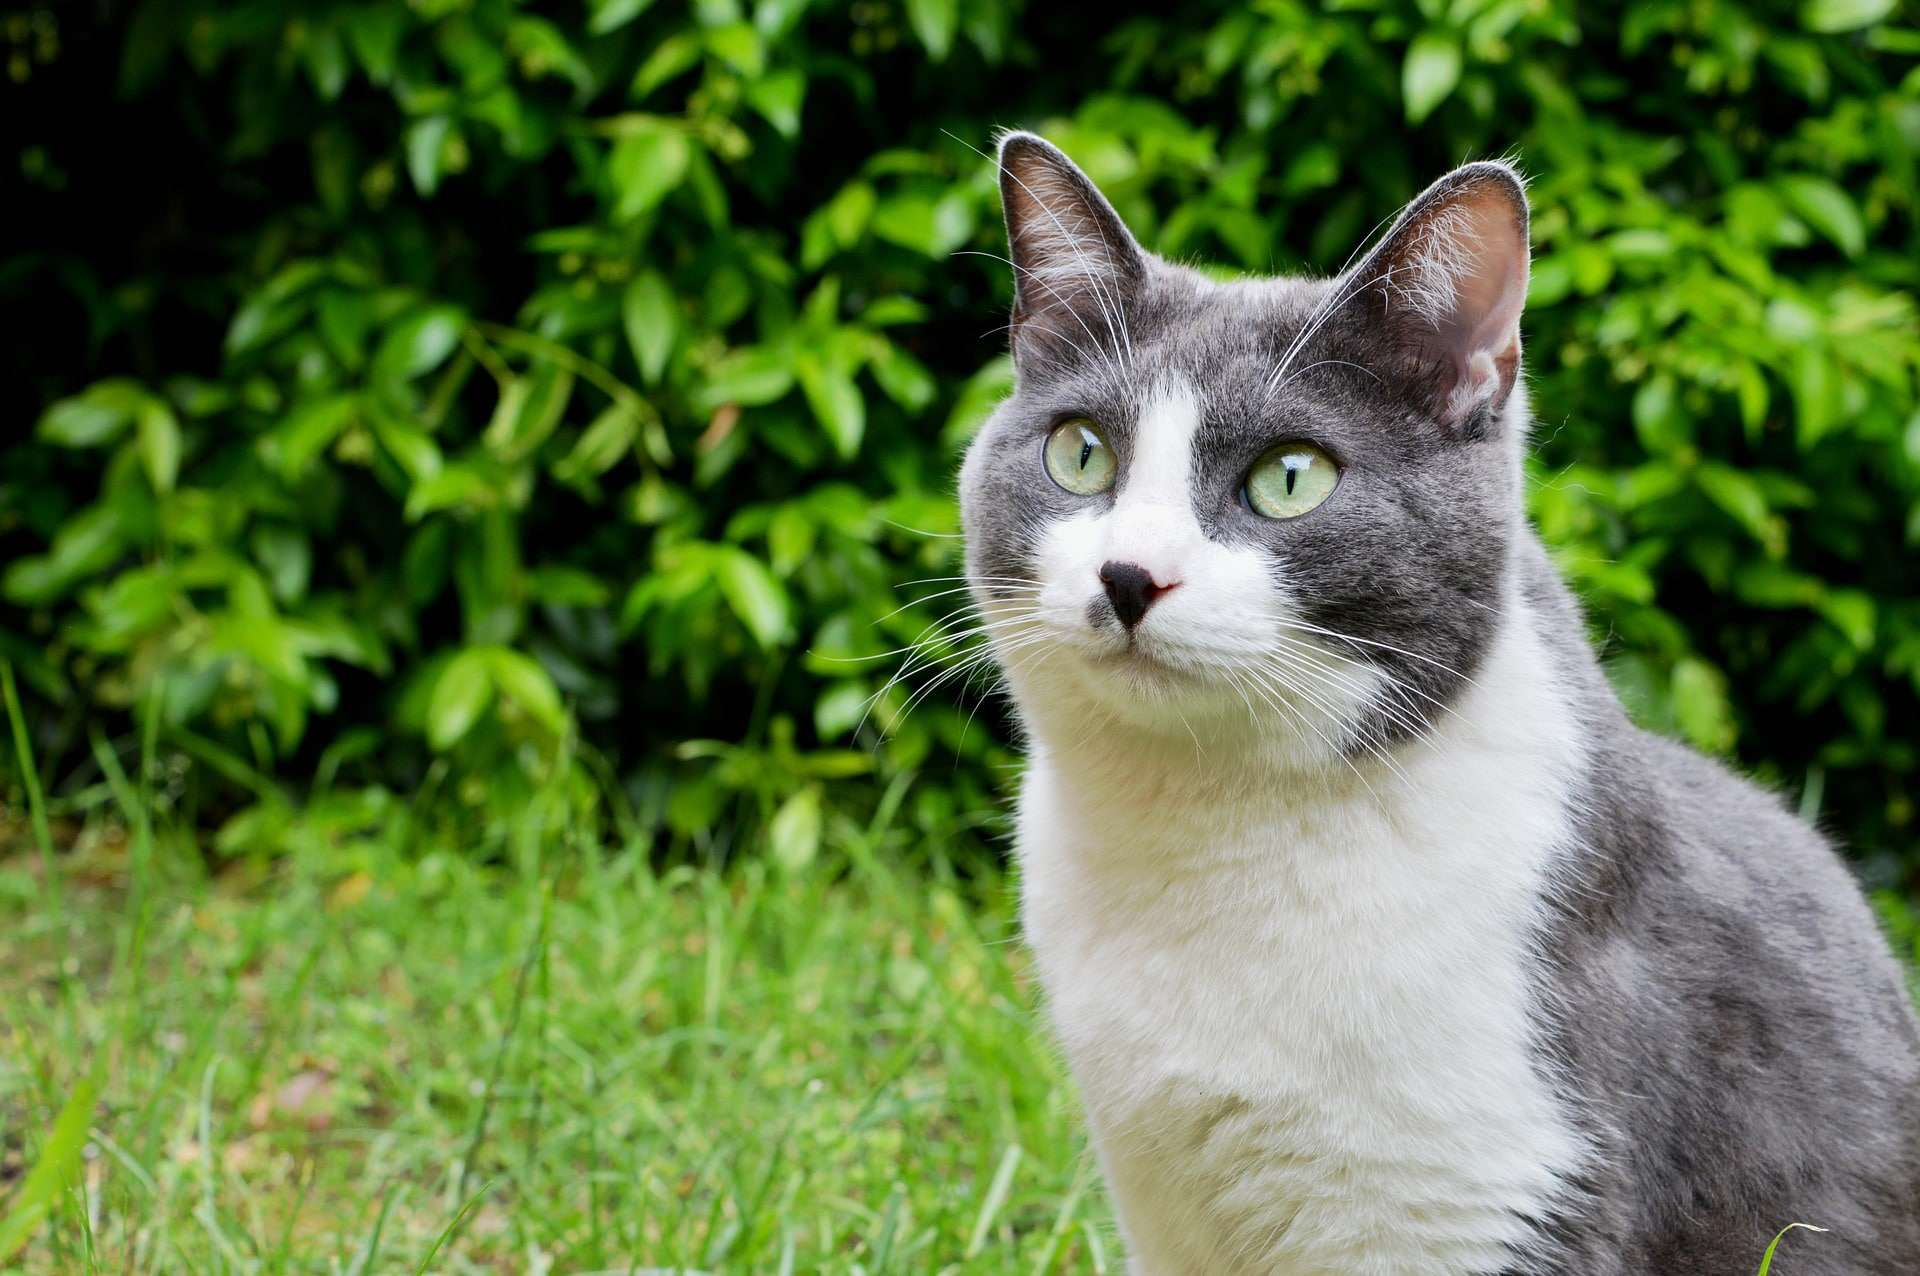 image of a gray and white cat with the cute dark nose